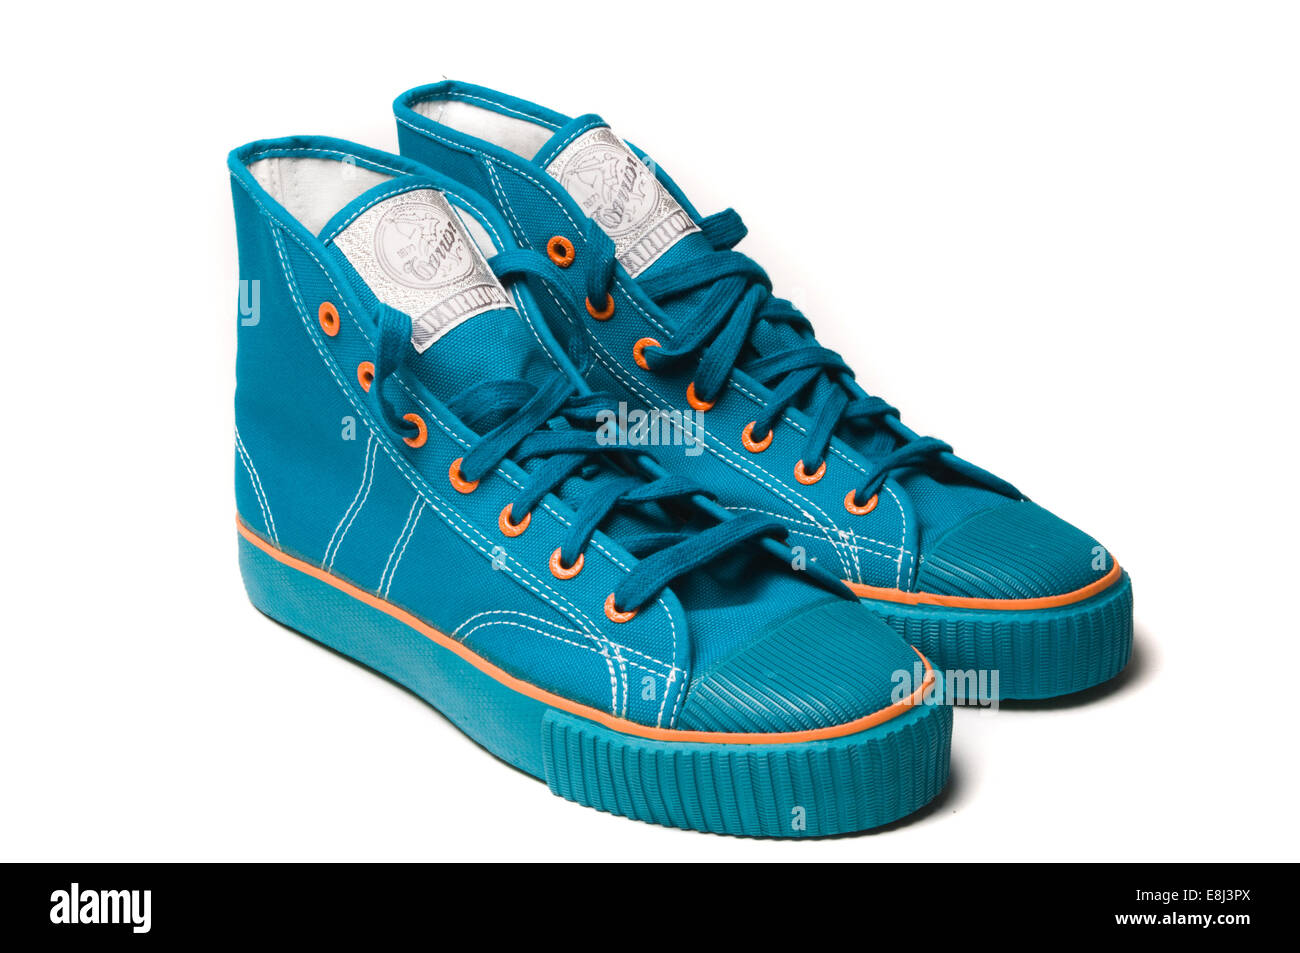 sneakers high top hightop trainers boot boots laces new shoe shoes training basketball warrior warriors converse - Stock Image